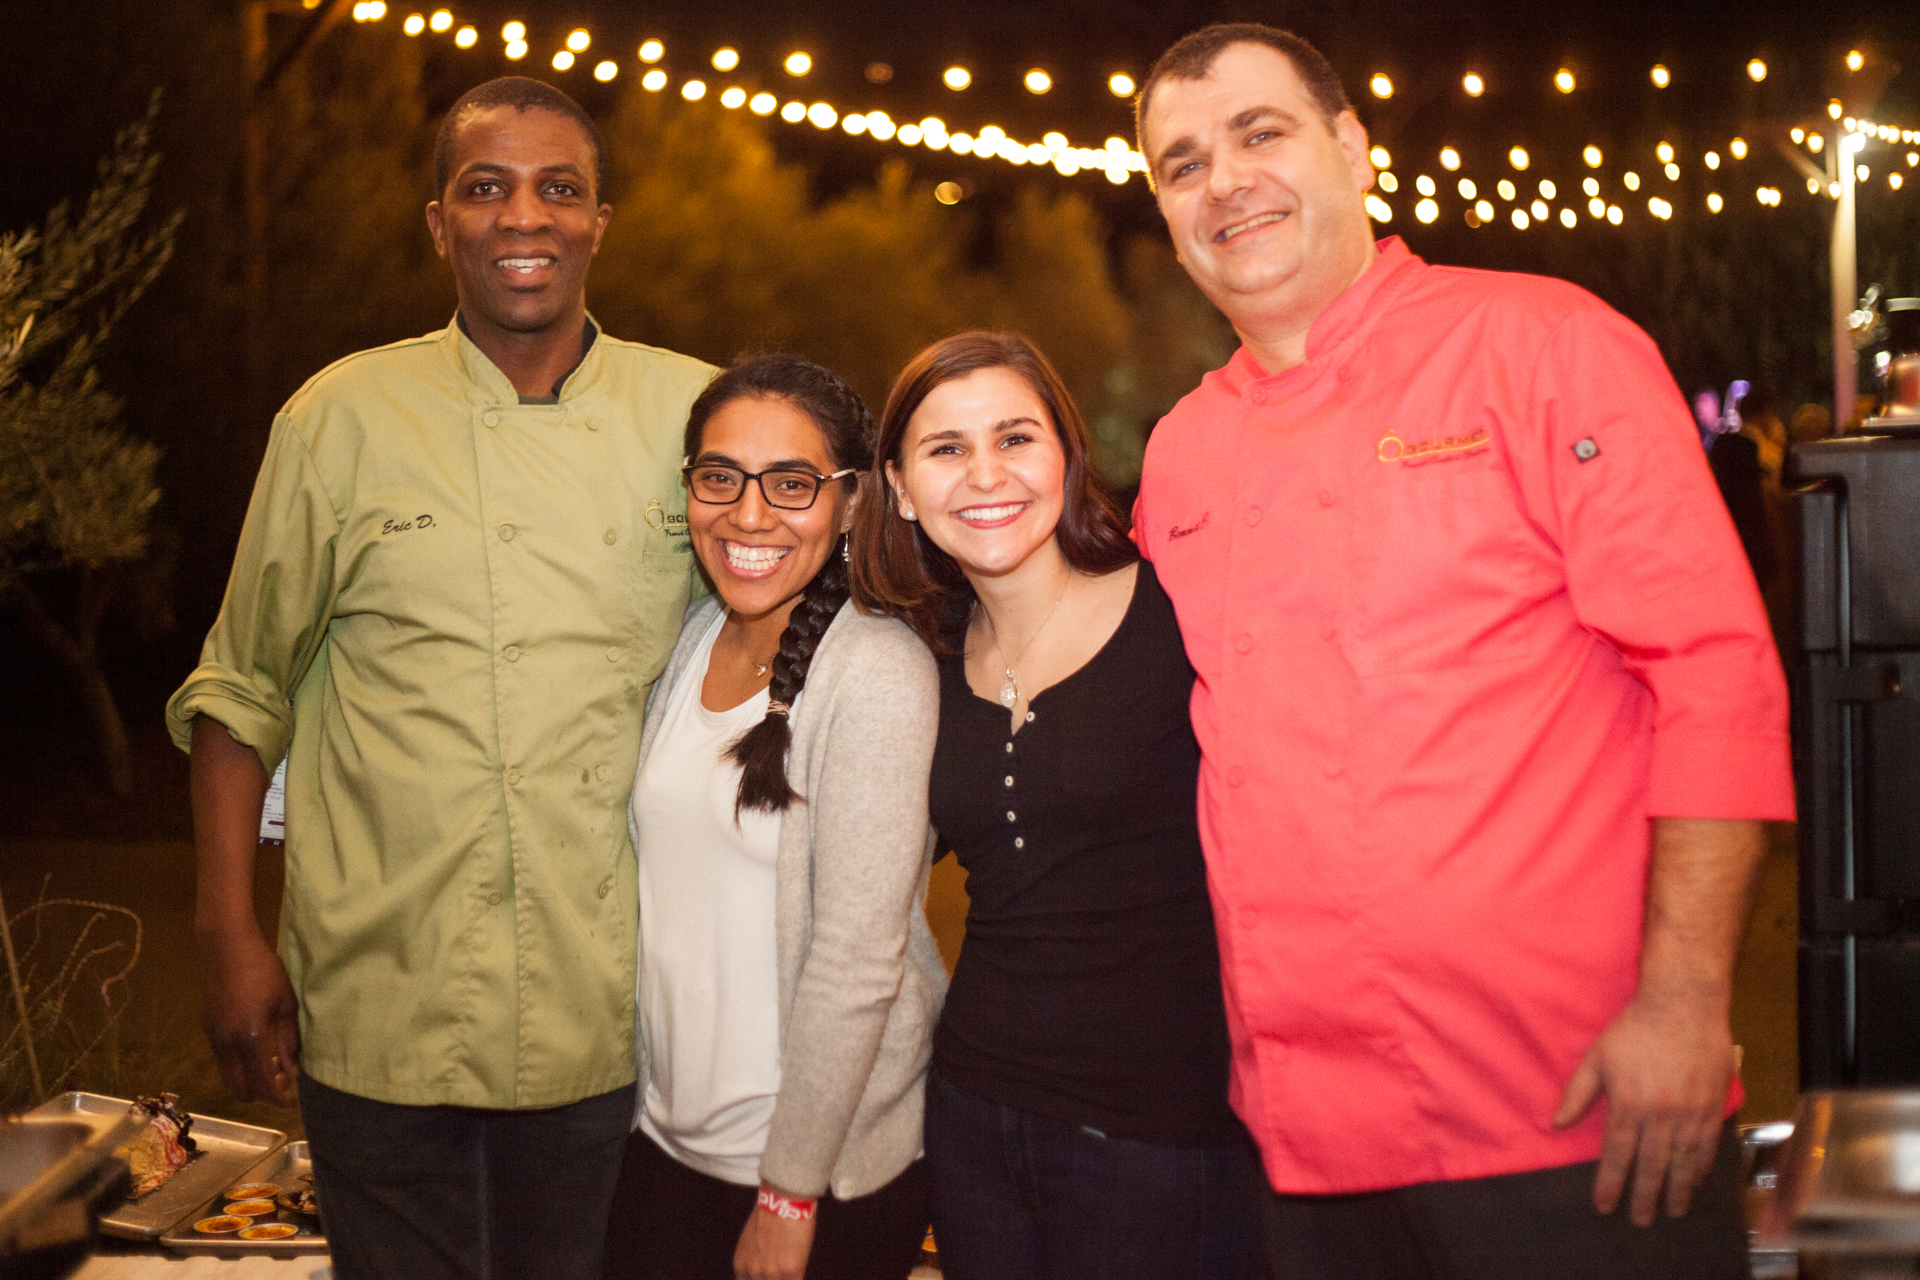 (Left to Right) From Ô Gourmet French Café & Bakery, chef/owner Eric Djomby, Alejandra Lopez, Laura Borrusa, and chef/owner Benoit Jussaume served Boeuf Bourguignon, creme brule and tarte tatin. Photo: Alex Paris